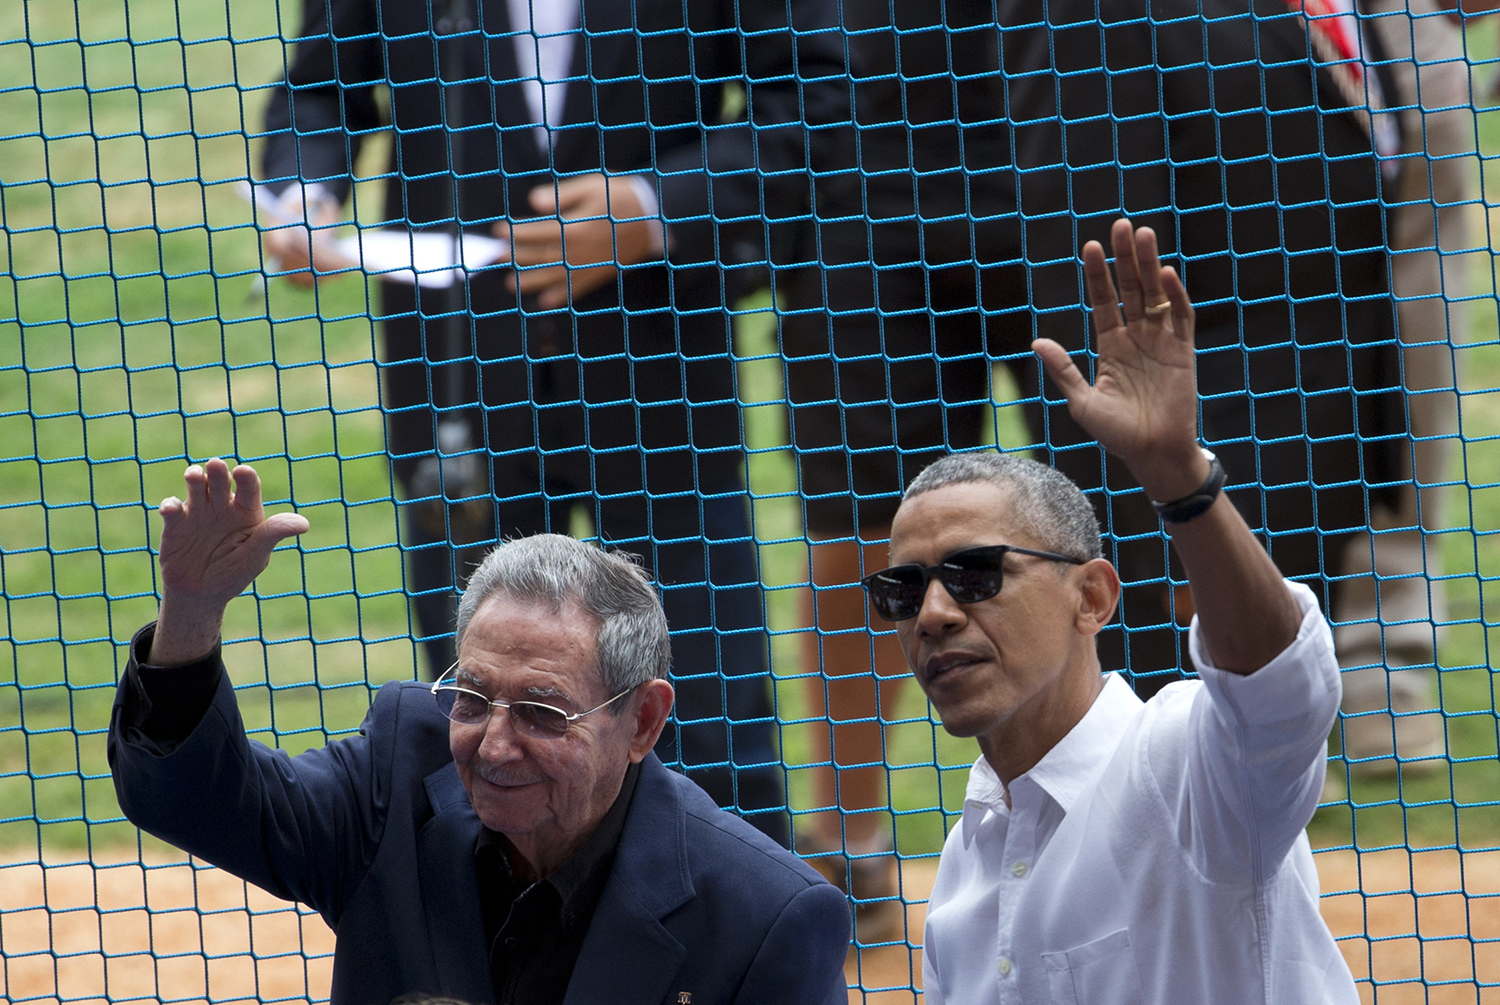 ap foto : rebecca blackwell : u.s. president barack obama, right, and his cuban counterpart raul castro wave to cheering fans as they arrive for a baseball game between the tampa bay rays and the cuban national baseball team, in havana, cuba, tuesday, march 22, 2016. the crowd roared as obama and cuban president raul castro entered the stadium and walked toward their seats in the vip section behind home plate. it's the first game featuring an mlb team in cuba since the baltimore orioles played in the country in 1999. (ap photo/rebecca blackwell) barack obama, raul castr cuba obam automatarkiverad